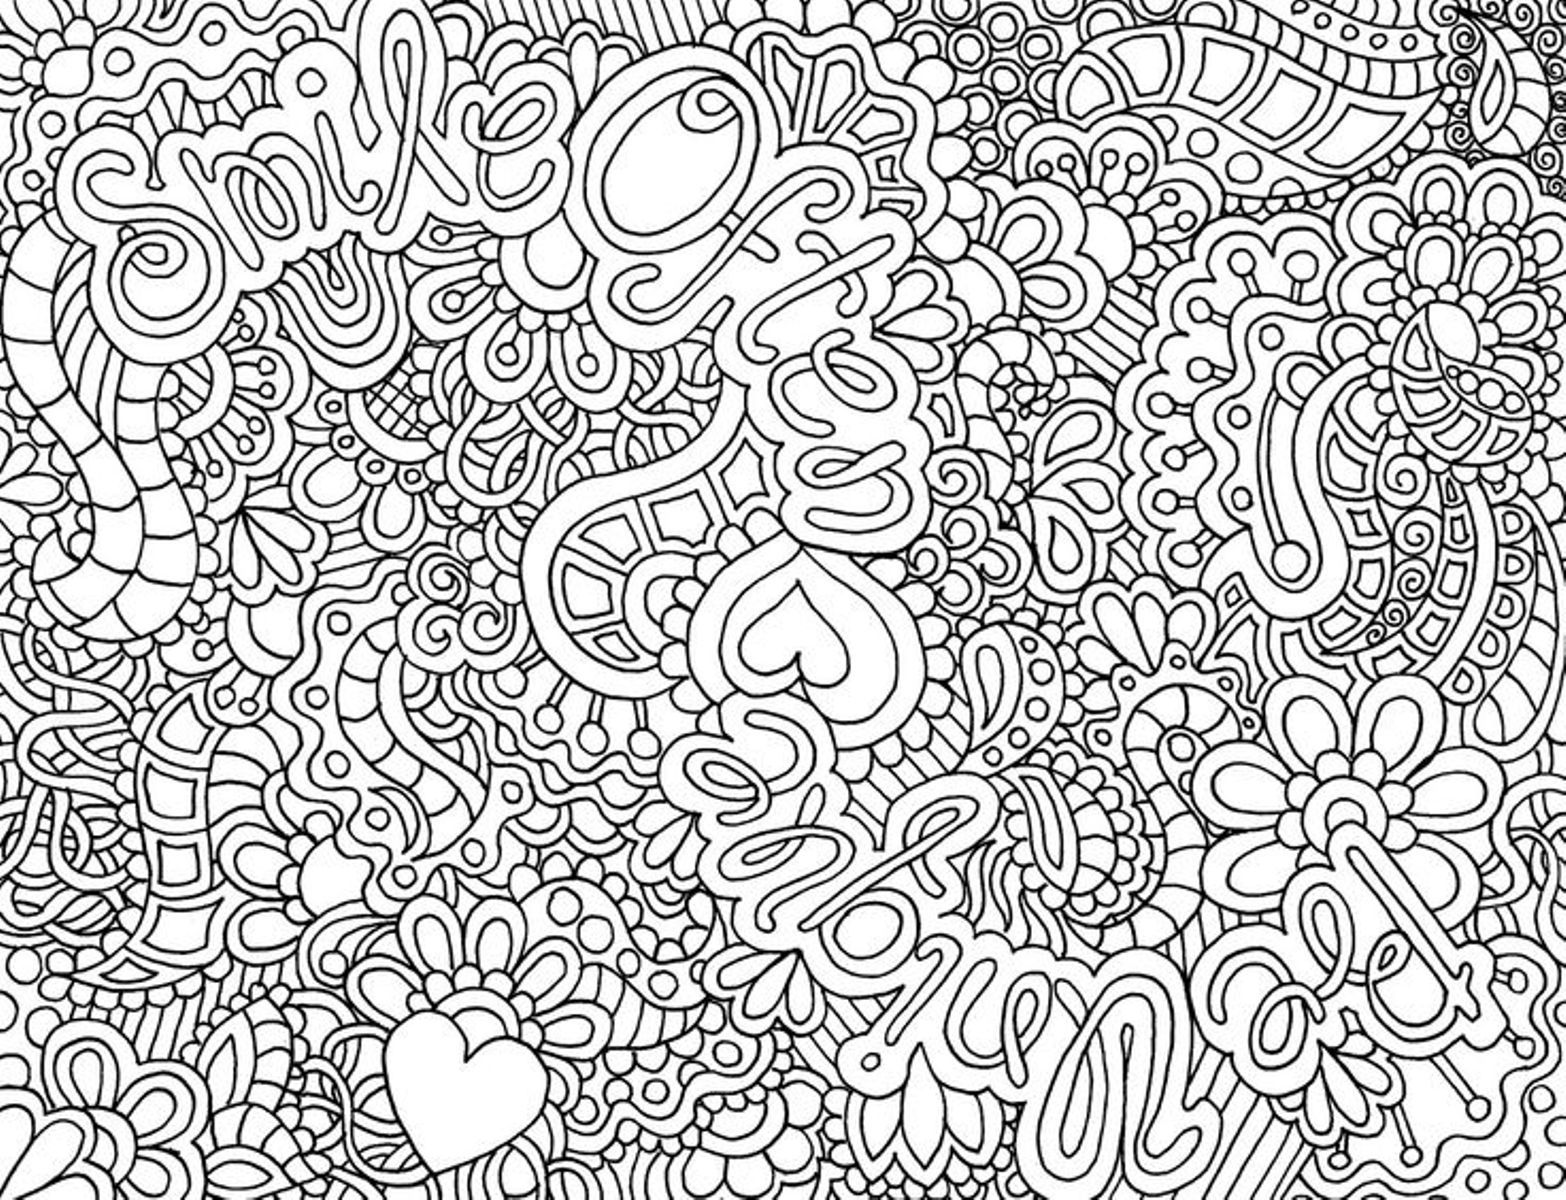 Mobile shimmer and shine coloring games coloring pages ausmalbilder - Coloring Pages Of Flowers For Teenagers Difficult Only Coloring Pages